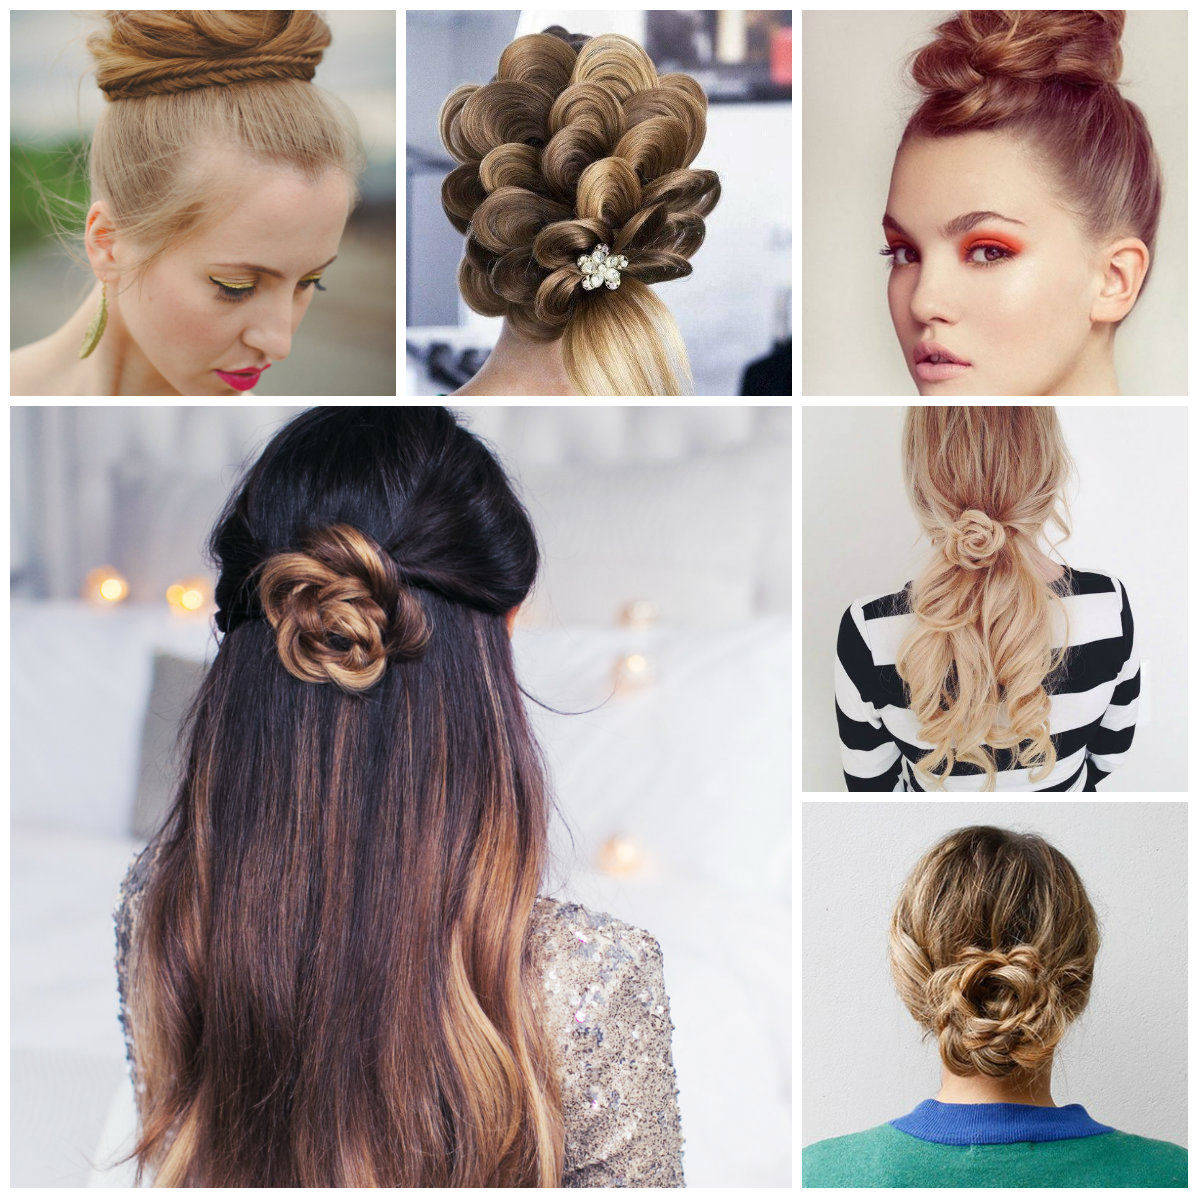 """Flowers Braid Hairstyles for Teens """"width ="""" 450 """"height ="""" 450 """"data-jpibfi-post-excerpt ="""" """"data-jpibfi-post-url ="""" http://www.frisuren-2018.com/blumen-braid -frisuren-for-teenagers / """"data-jpibfi-post-title ="""" Flowers Braid hairstyles for teenagers """"data-jpibfi-src ="""" http://www.frisuren-2018.com/wp-content/uploads/2018/ 10 / ee6120415b8a252e2d575d39817575cc.jpeg """"/> <strong>Flowers Braid half updo</strong></h2> <p>Half-down hairstyles on long hair are one of the most delicate and feminine hairstyles for women. These hairstyles need updates and new styling options.</p> <p>So, if you want to wear a unique Half Updo hairstyle, then take a look at this stunning example. It's a sweet half updo with a floral braid in the middle and looks so chic due to the fashionable ombre style. It allows the braid to have two tones, which in turn gives your hairstyle more charm.</p> <h3><img class="""